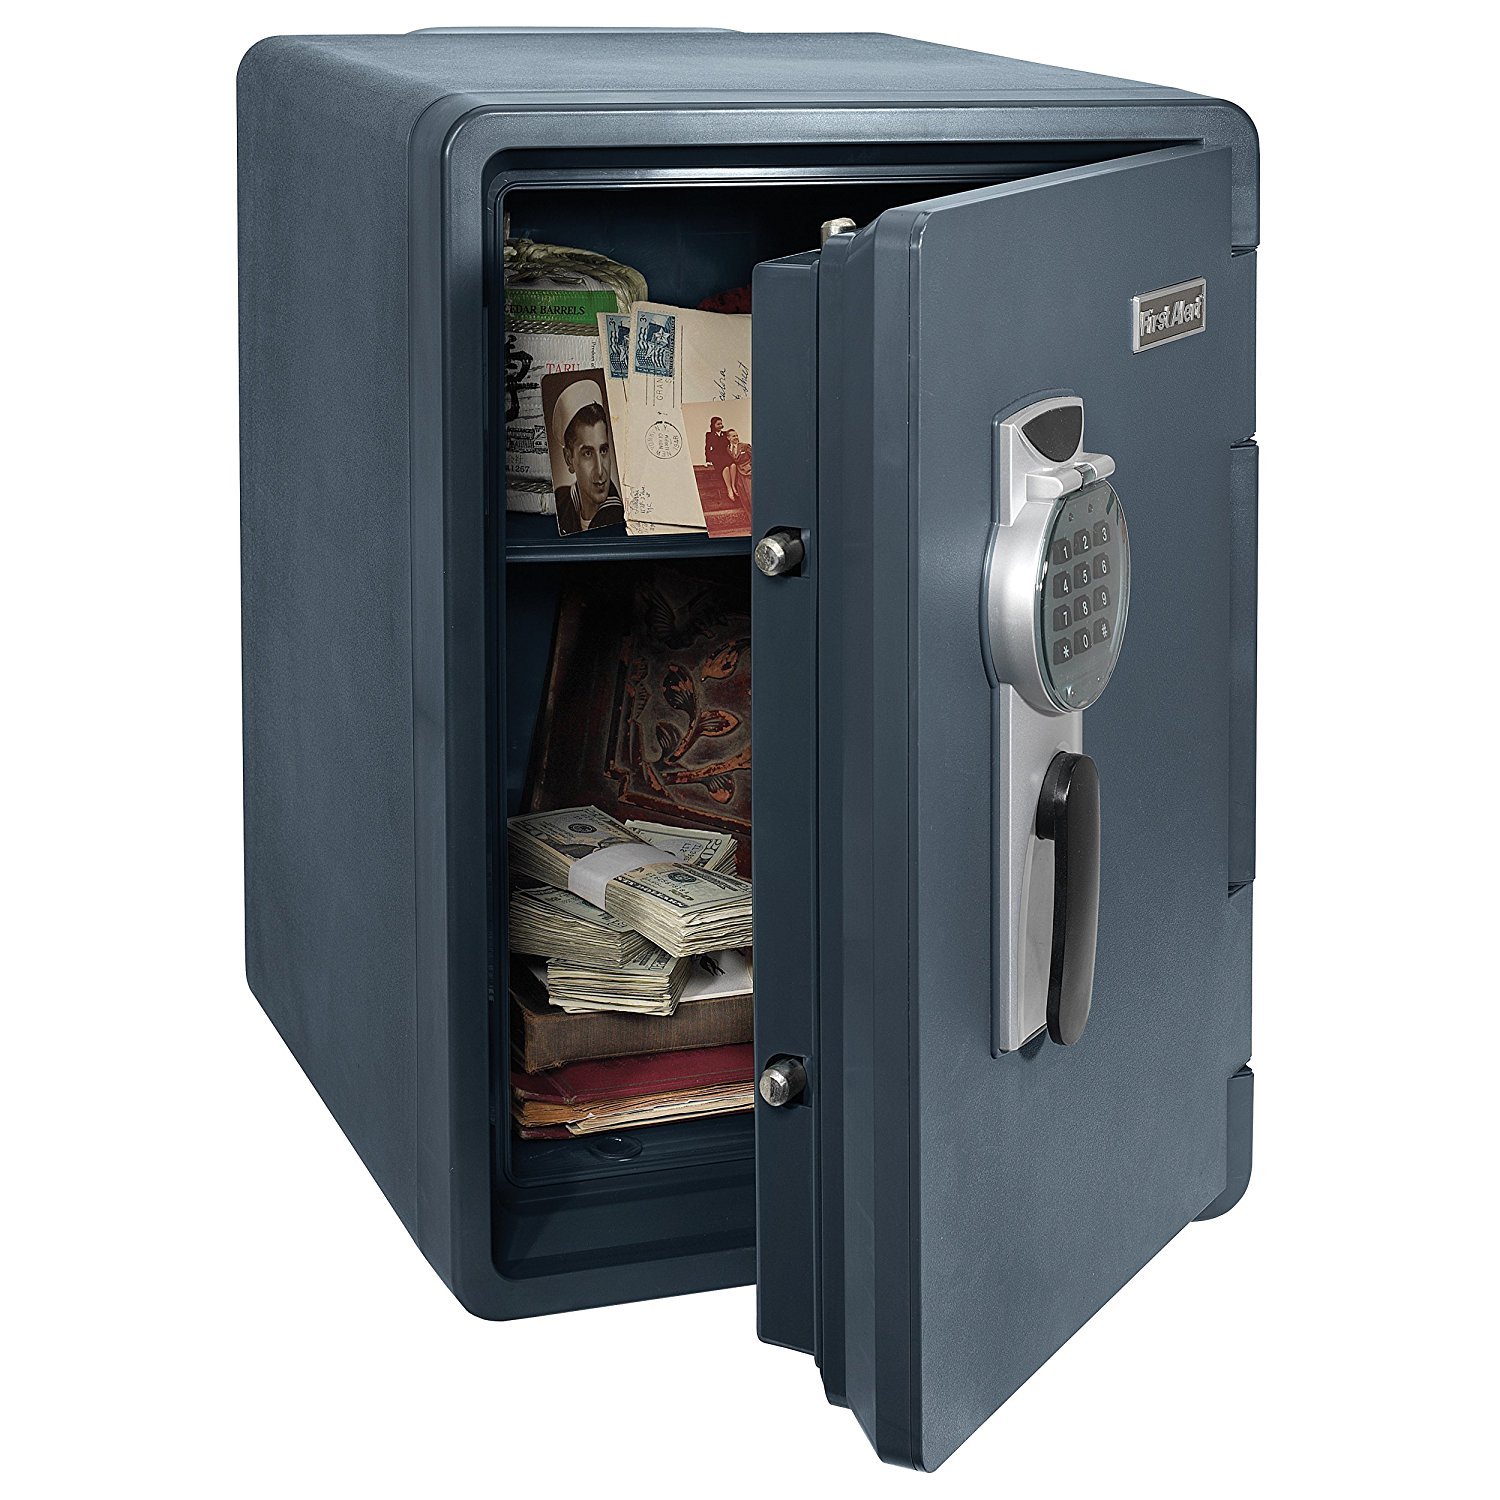 the First Alert 2096DF Waterproof Fire Safe with Digital Lock opened